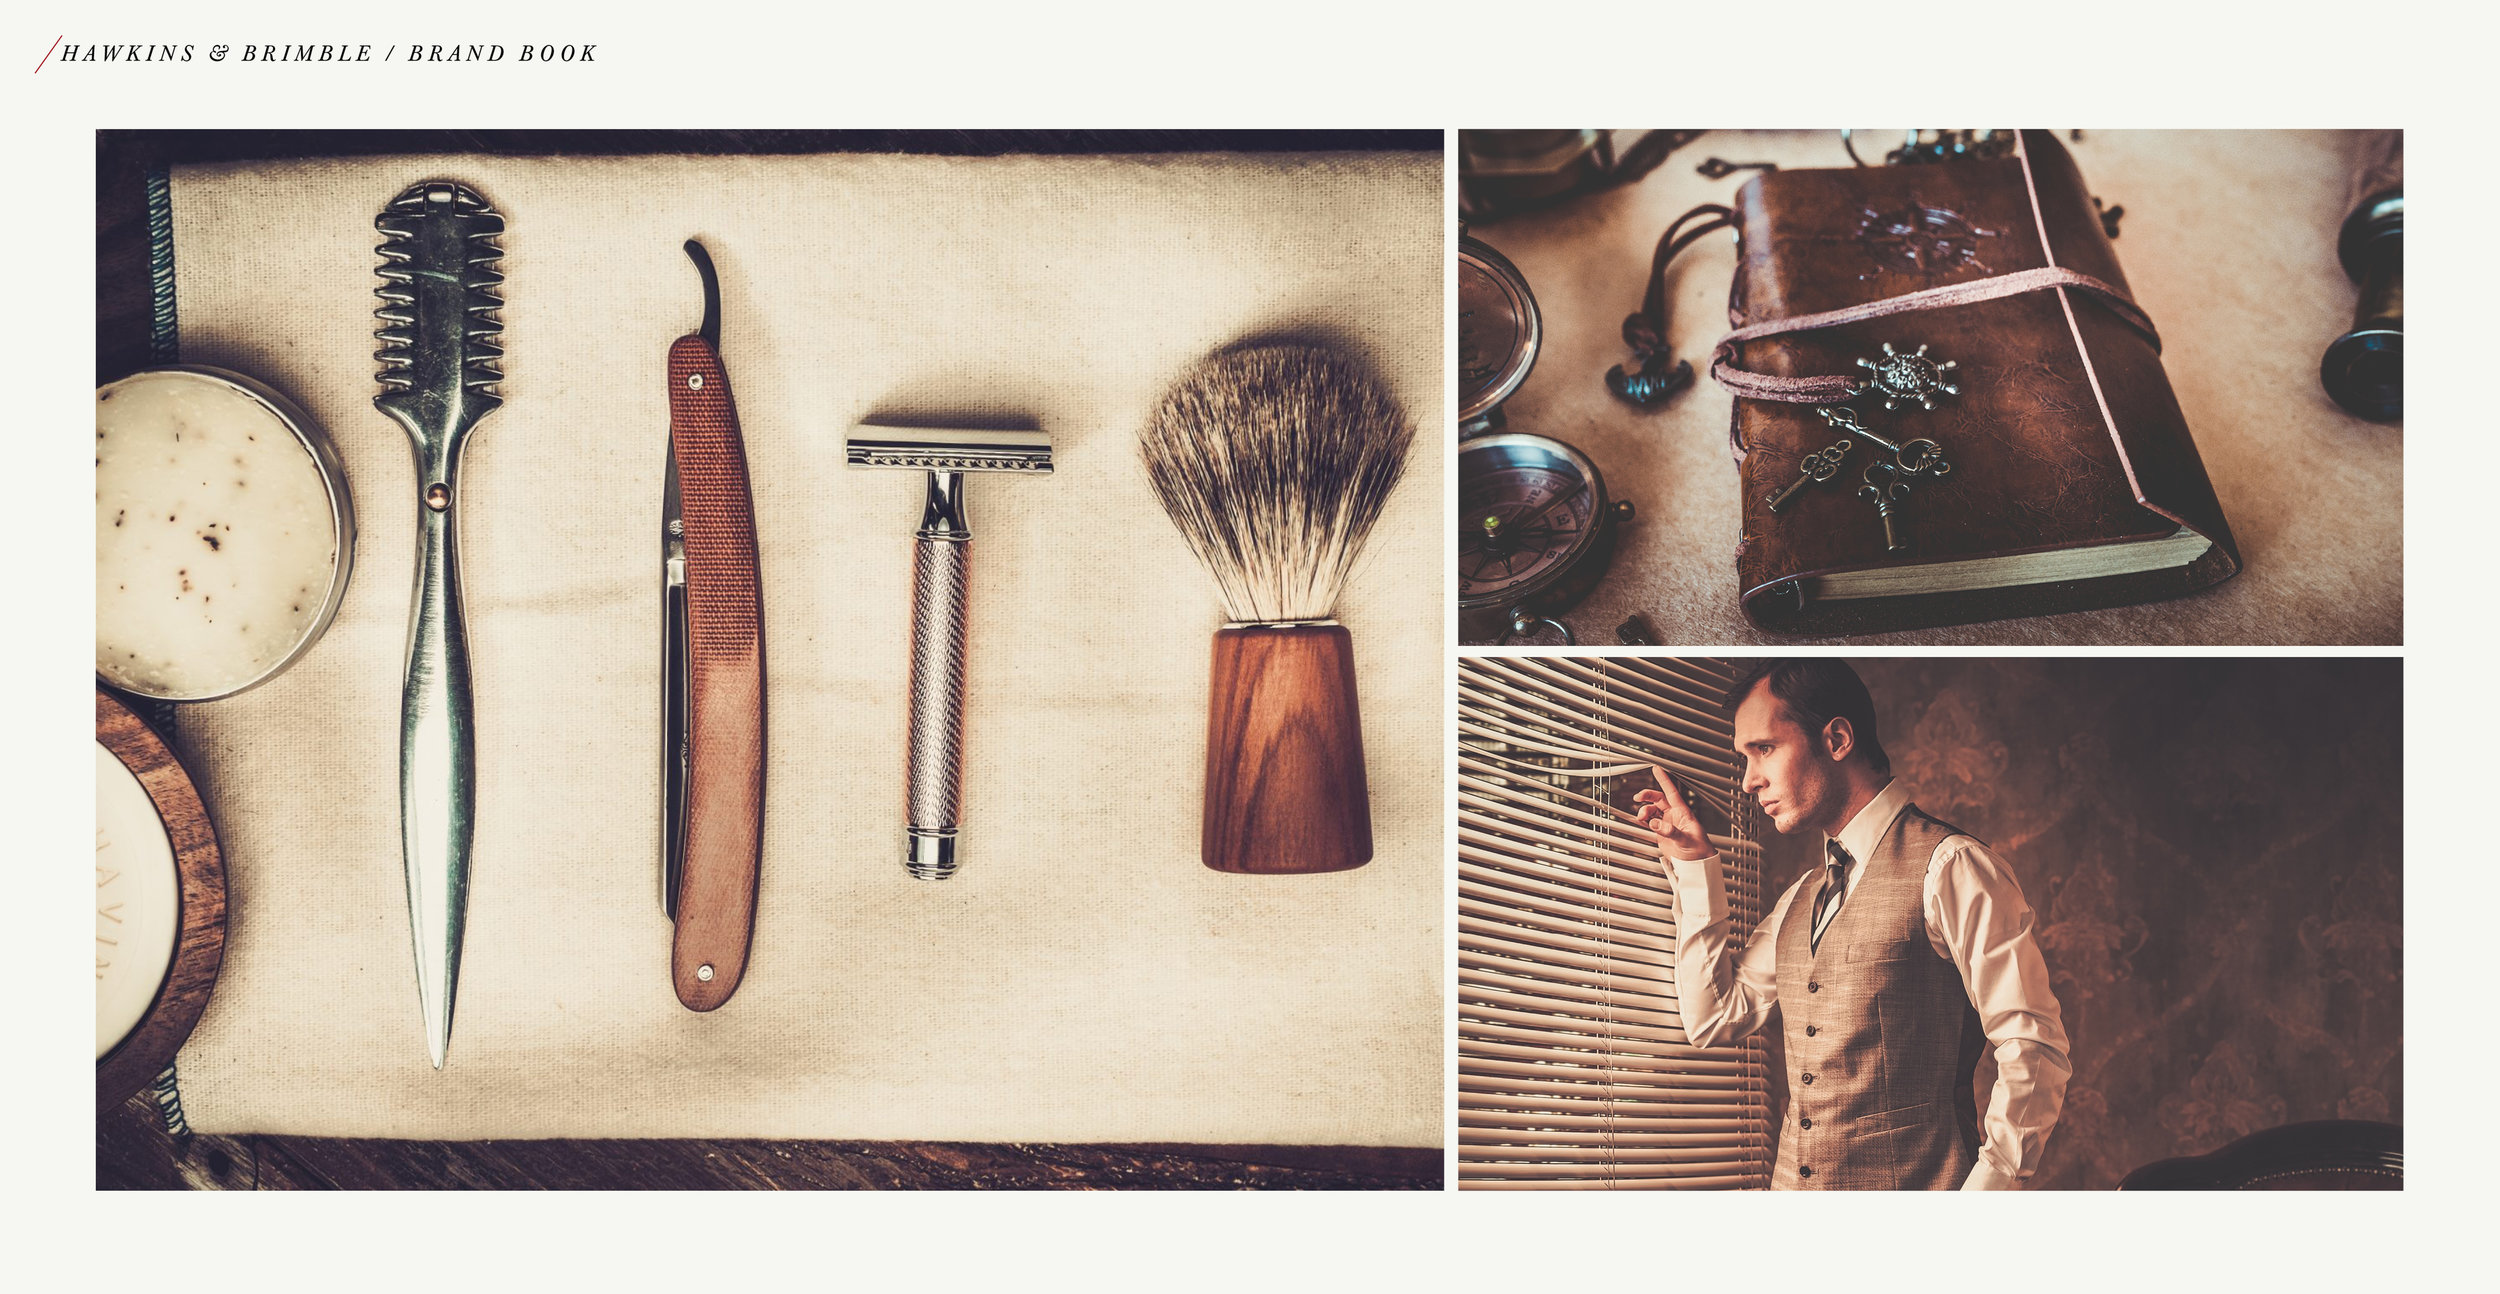 Launching a male grooming brand - brand book photography